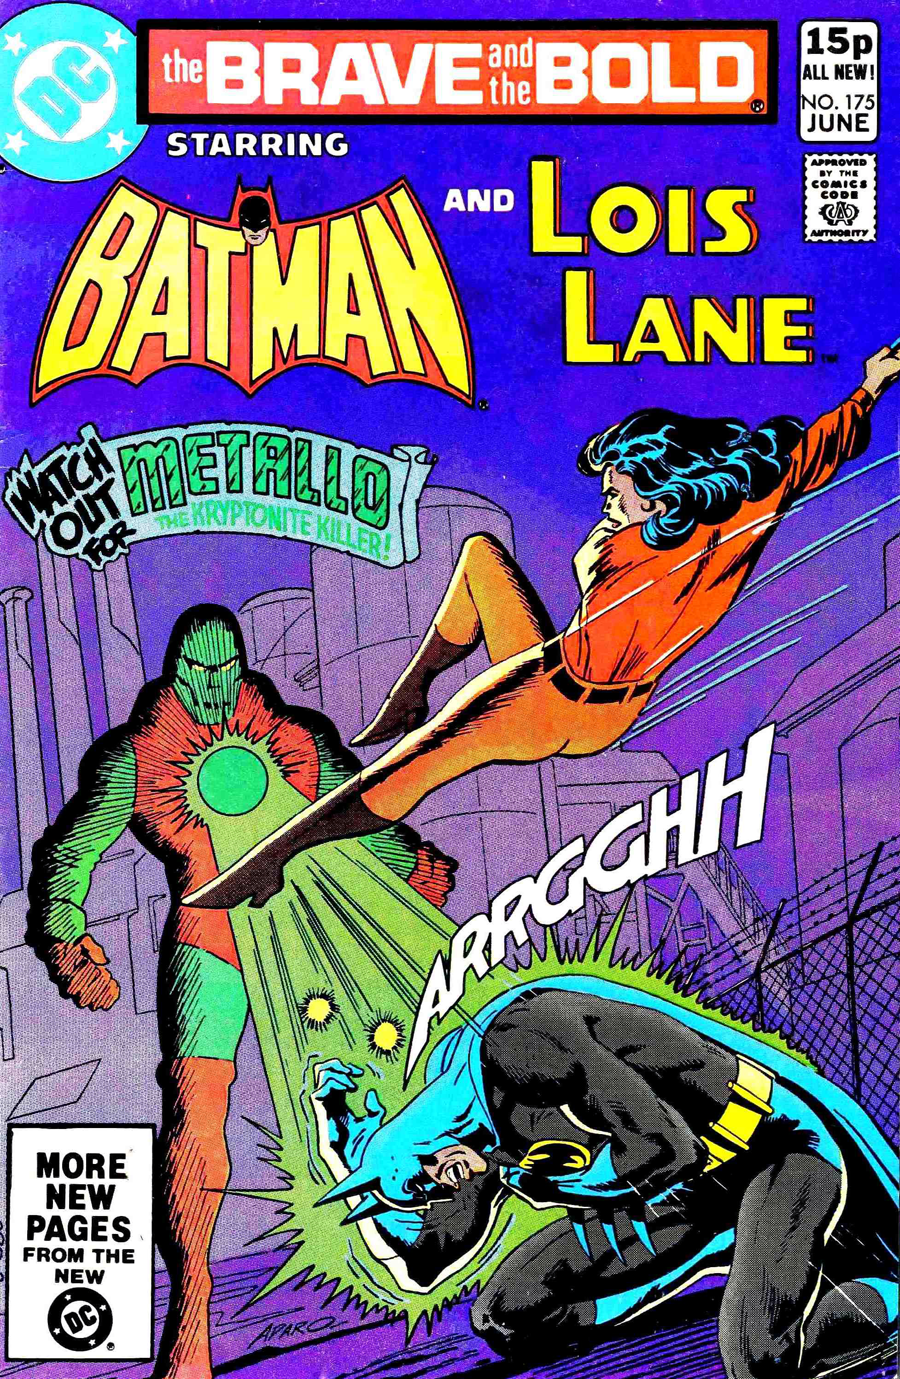 Brave and the Bold #175 cover by Jim Aparo